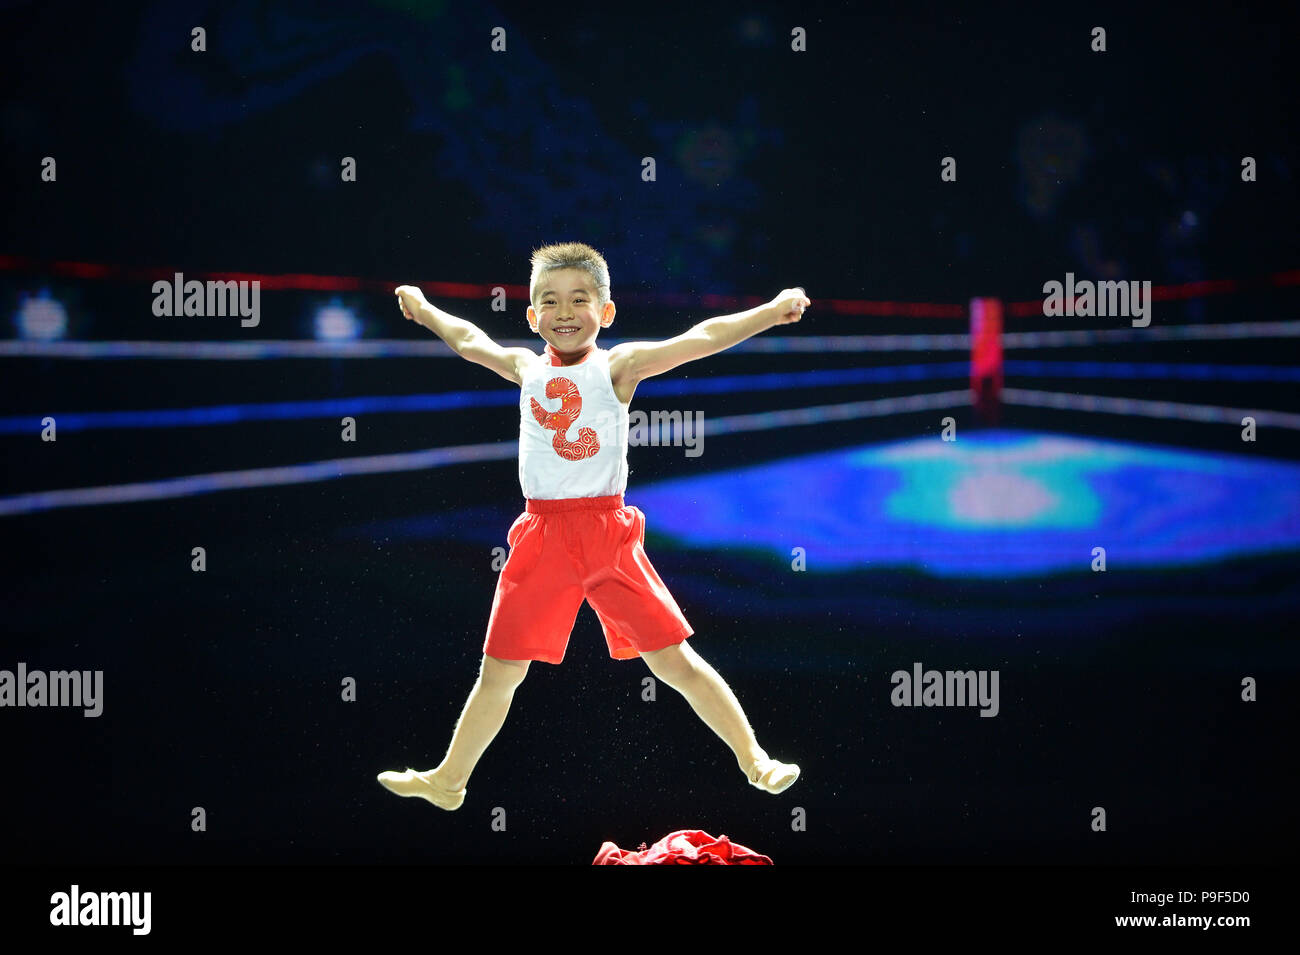 Beijing, China. 17th July, 2018. A little boy performs during a dance exhibition at Tianqiao Performing Arts Center in Beijing, capital of China, July 17, 2018. The dance exhibition, co-hosted by China Federation of Literary and Art Circles and Chinese Dancers Association, was held from July 17 to 18. Credit: Xiao Xiao/Xinhua/Alamy Live News - Stock Image